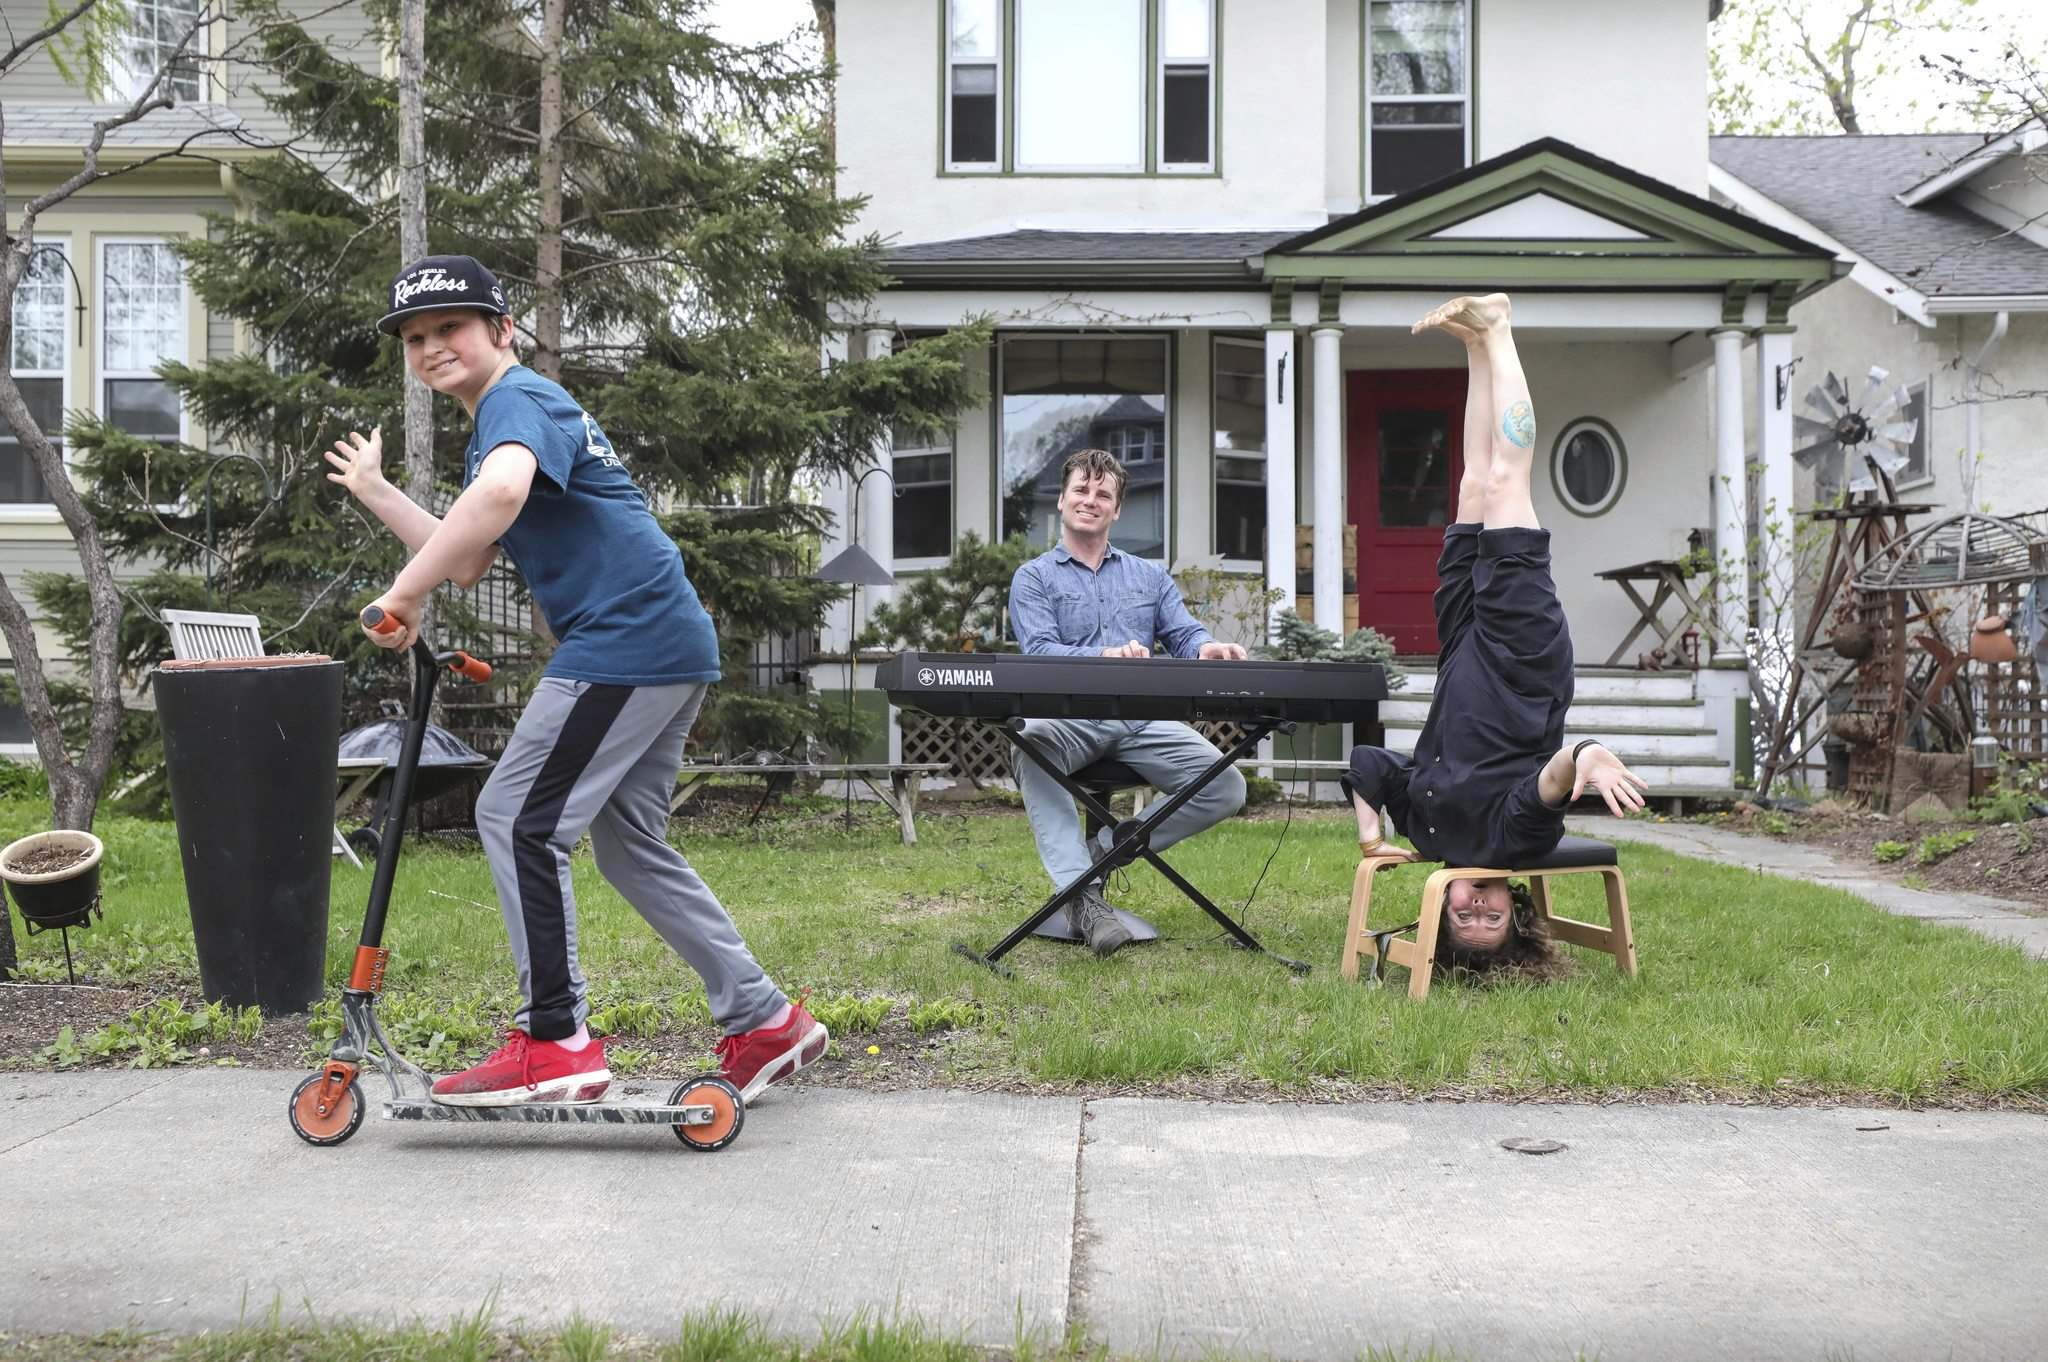 RUTH BONNEVILLE / WINNIPEG FREE PRESS</p><p>Zsigunnar Thordarson cruises by as his dad, Karl Thordarson, channels some Bob Dylan and mom Daina Leitold gets a new perspective on life.</p></p>